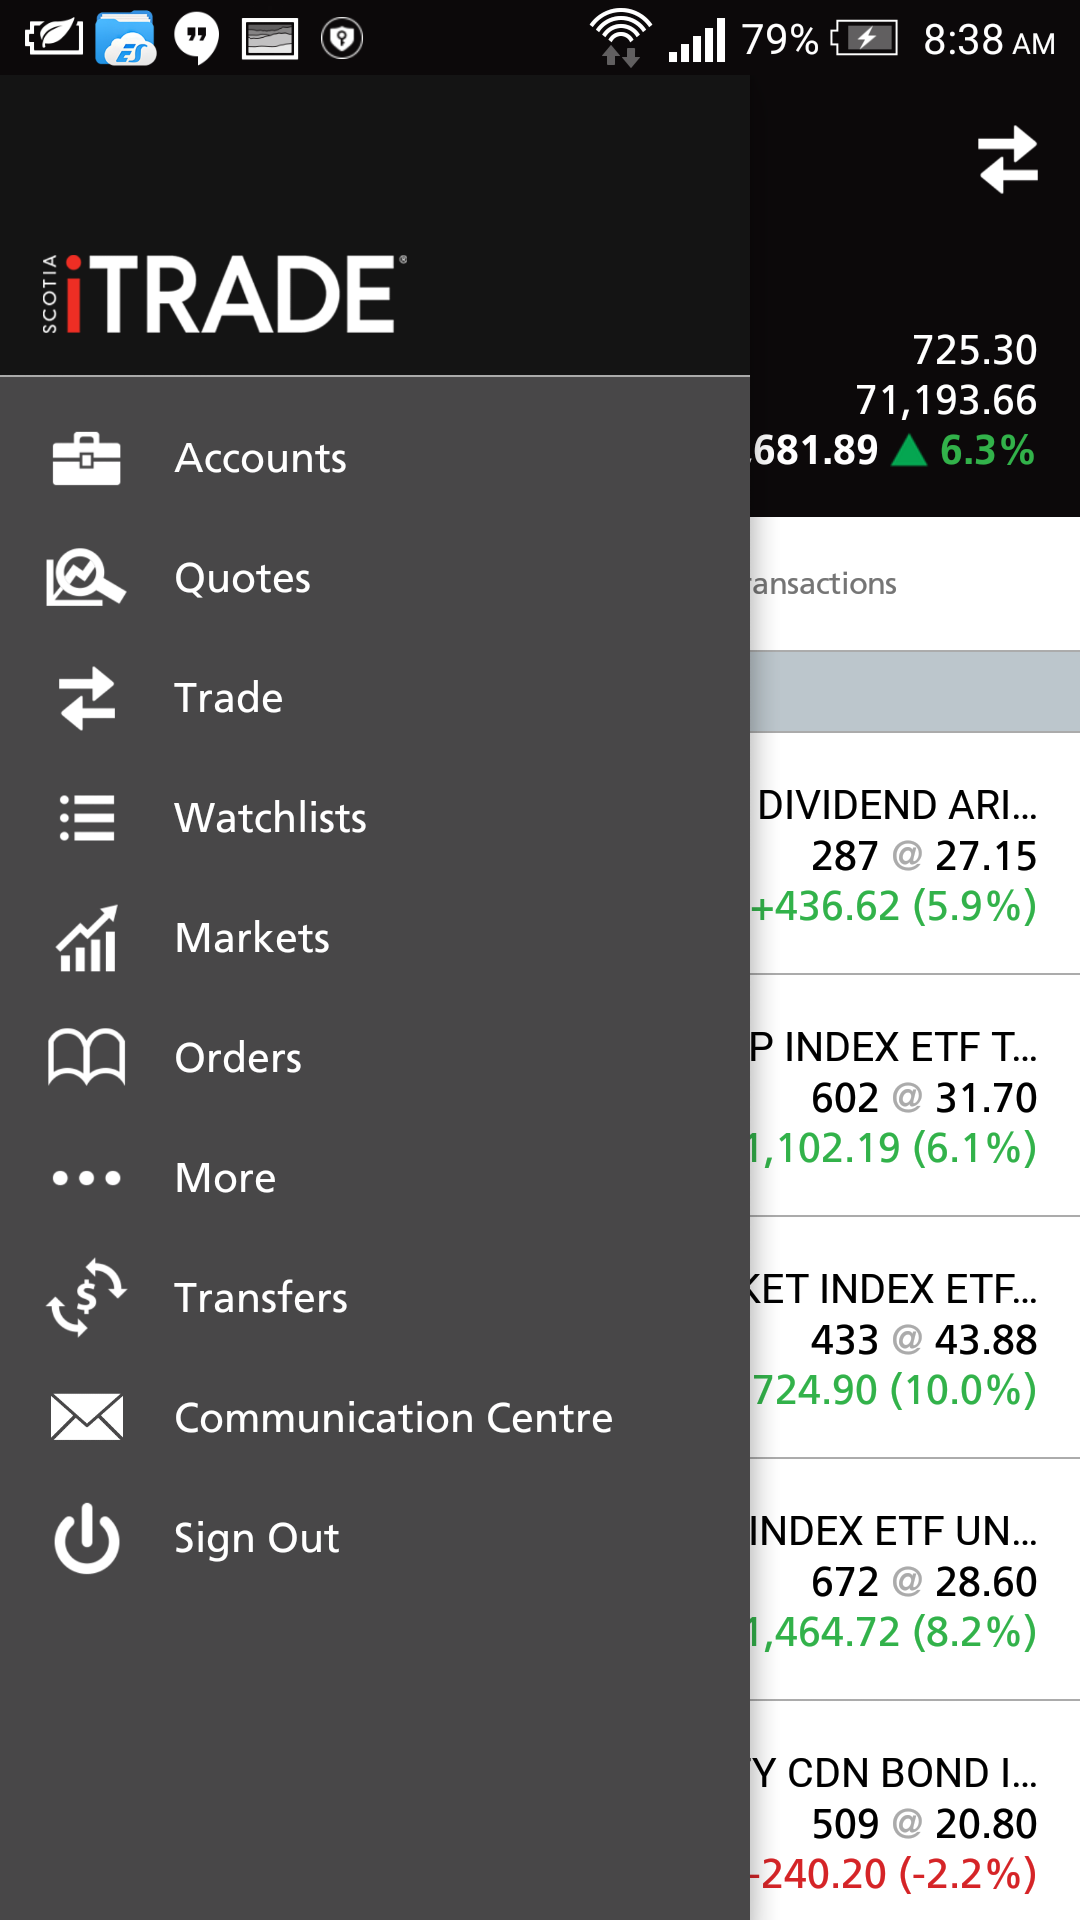 Scotia iTrade Review: Mobile Trading